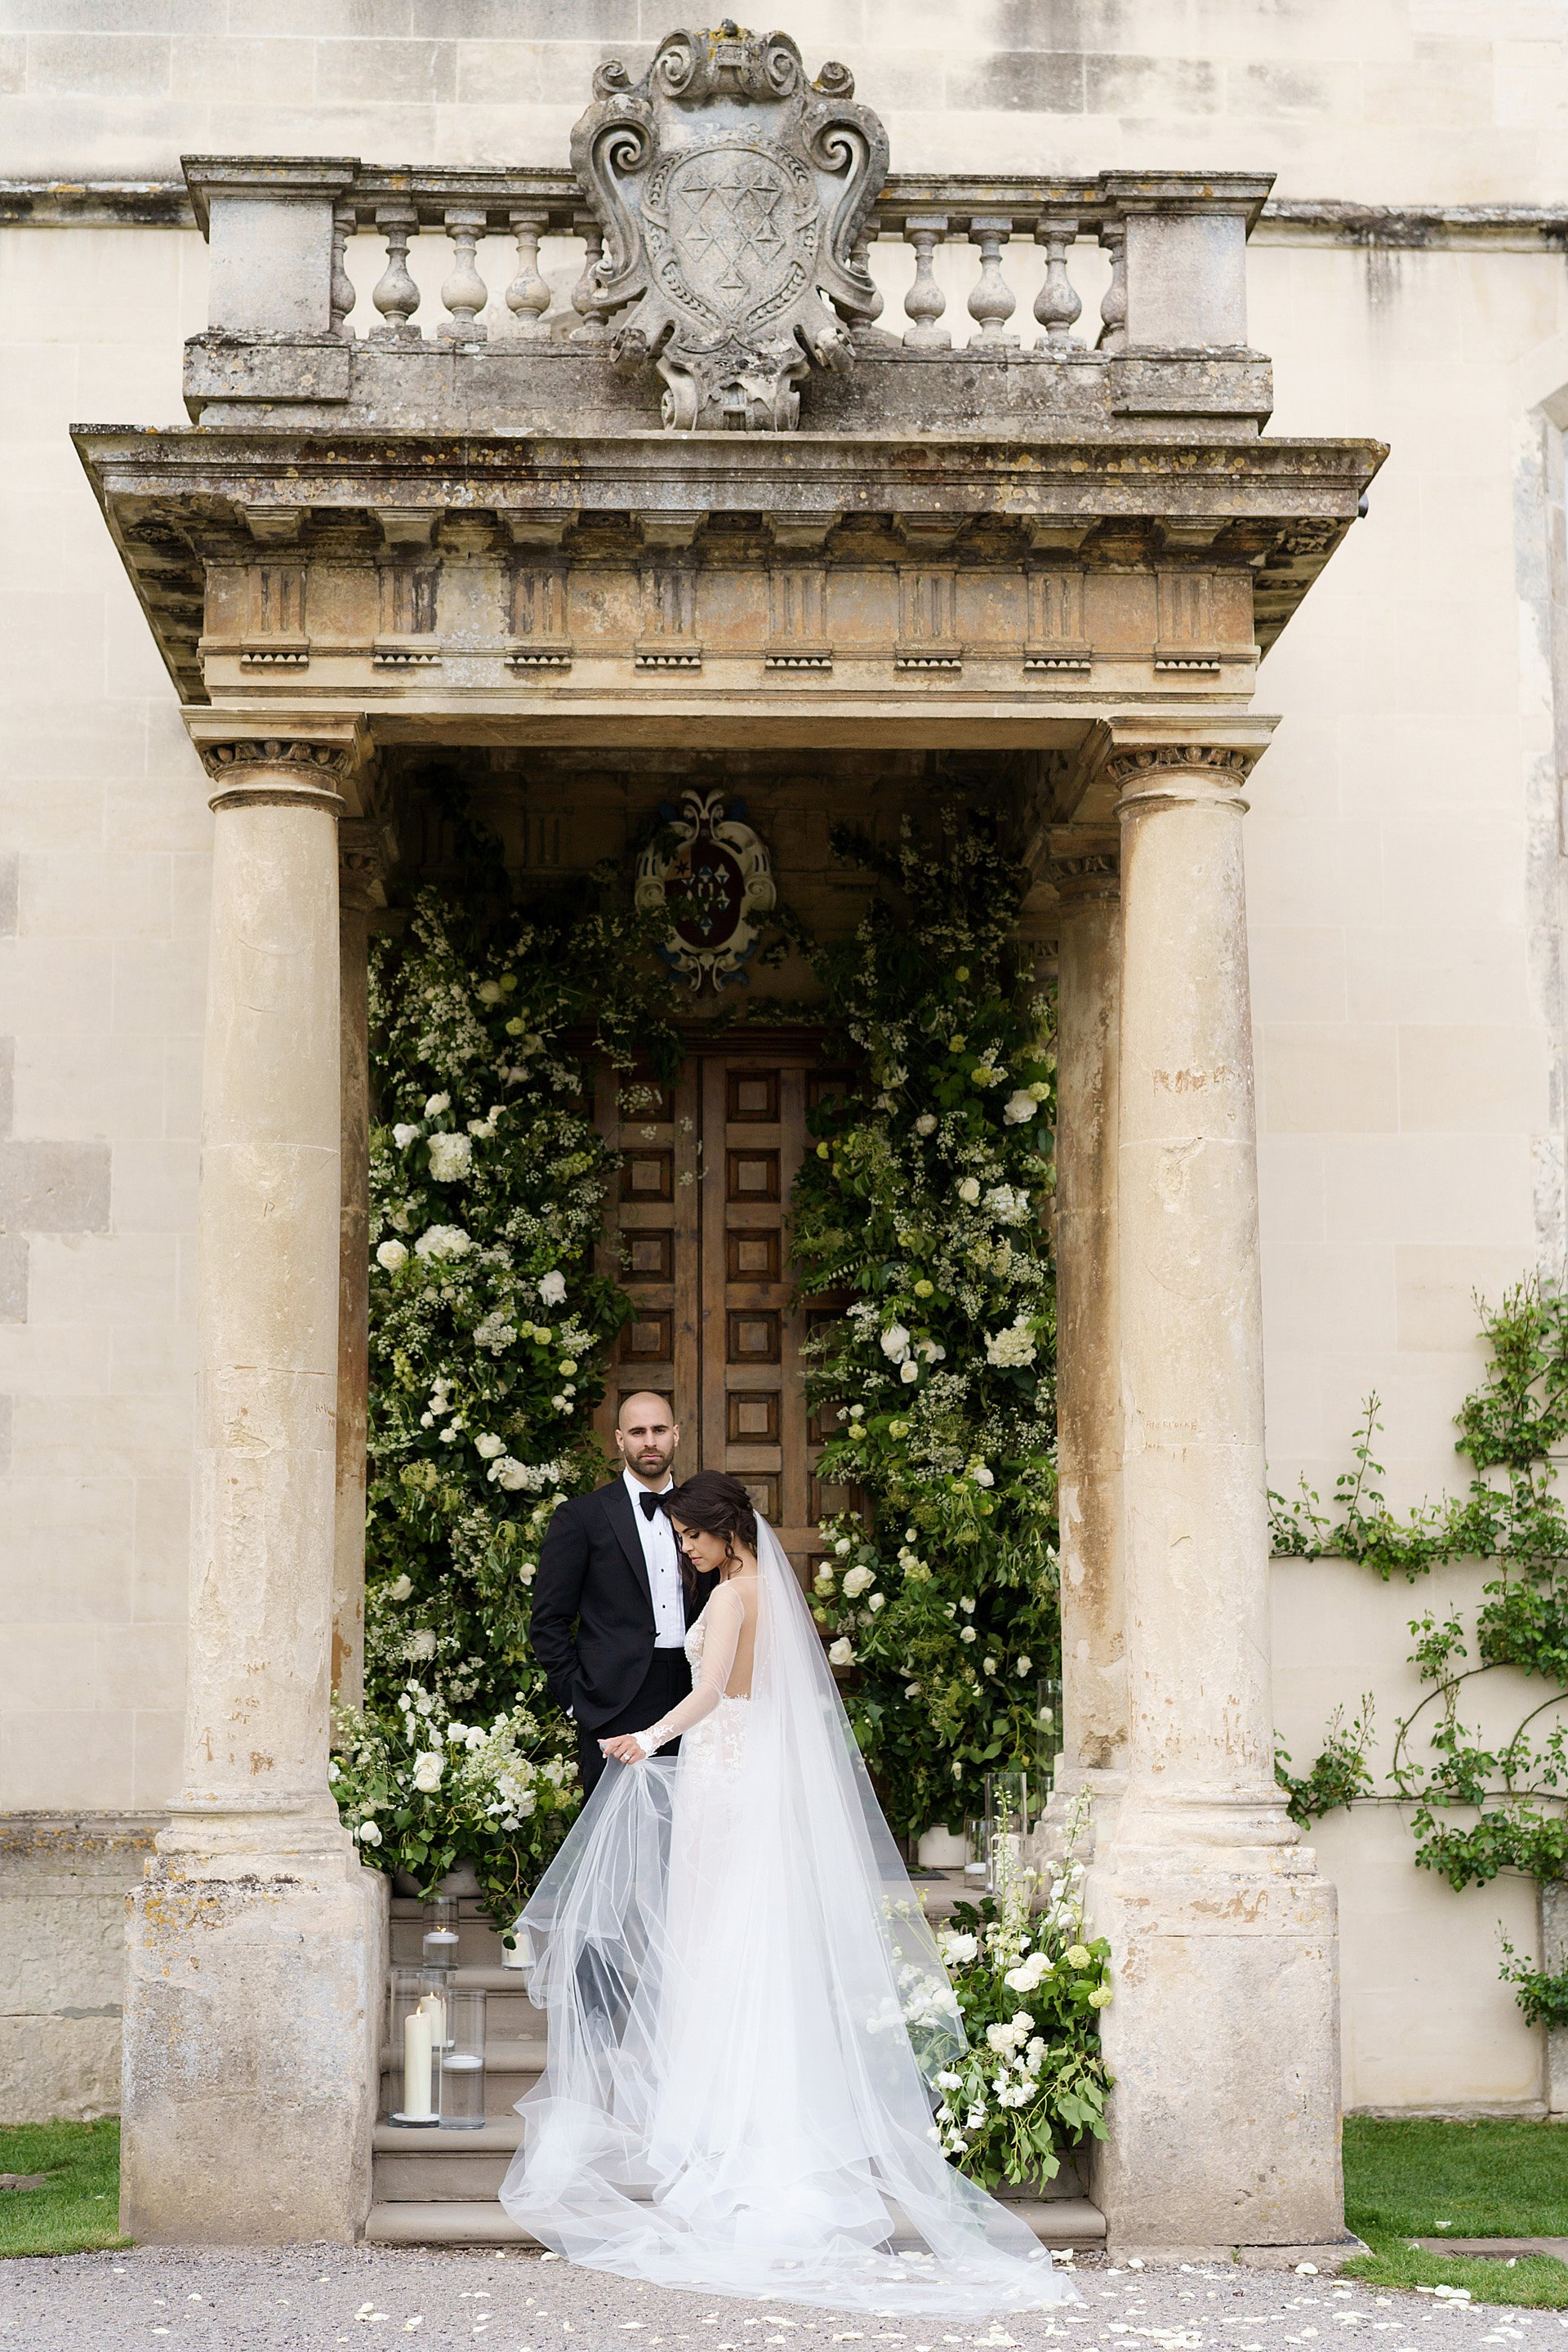 bride and groom stand under porch with columns against backdrop of huge statement greenery and white floral arrangement for a micro wedding